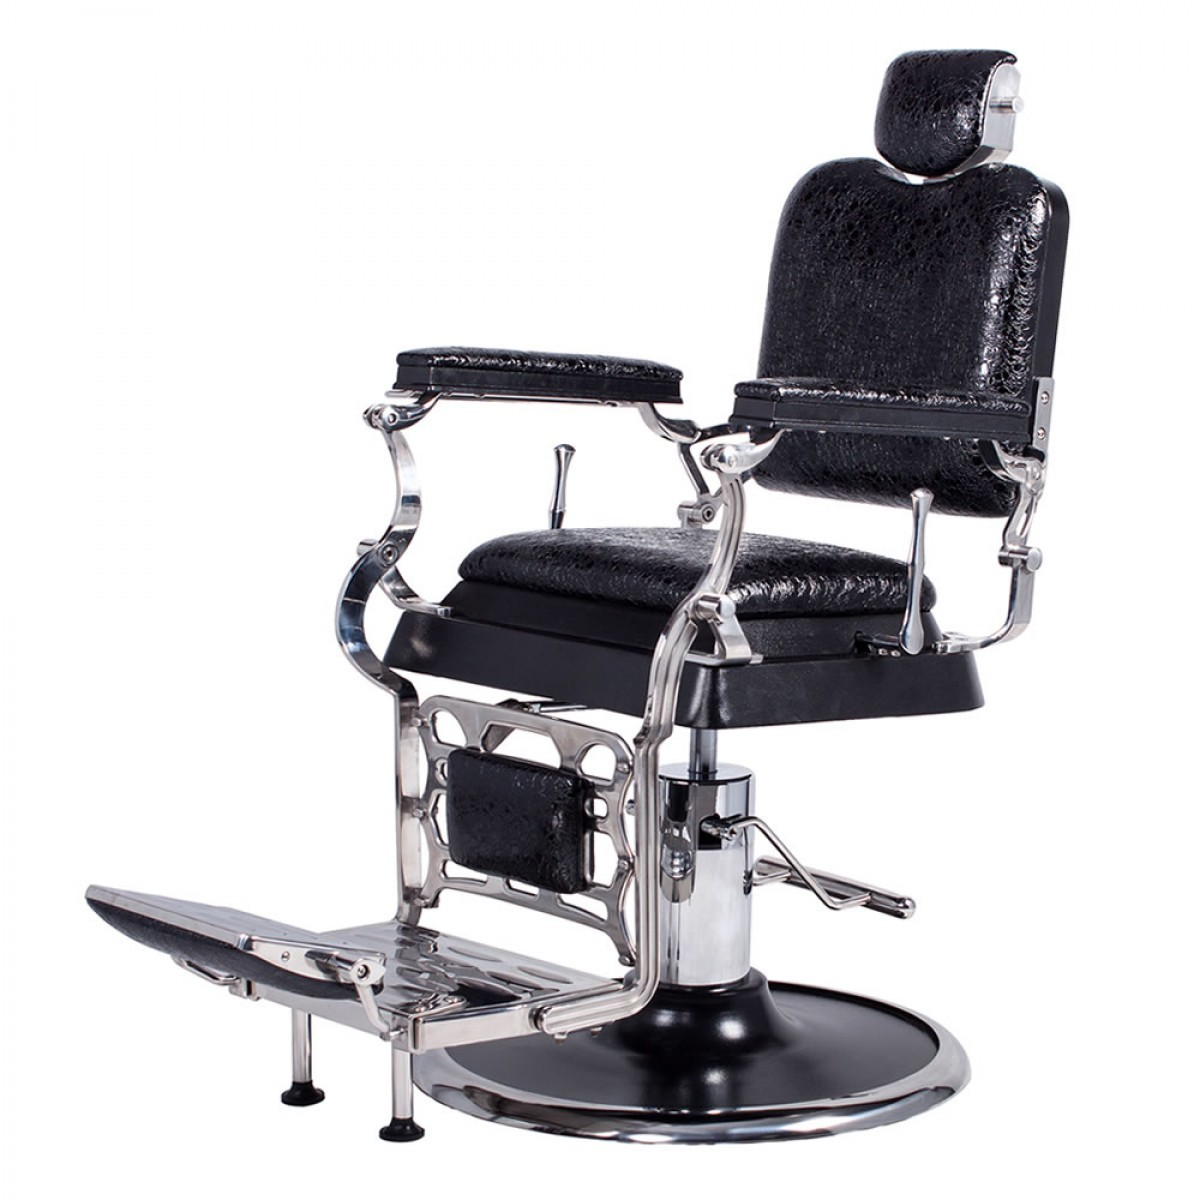 EMPEROR Barber Chair  Barber Chairs Barber Shop Chairs